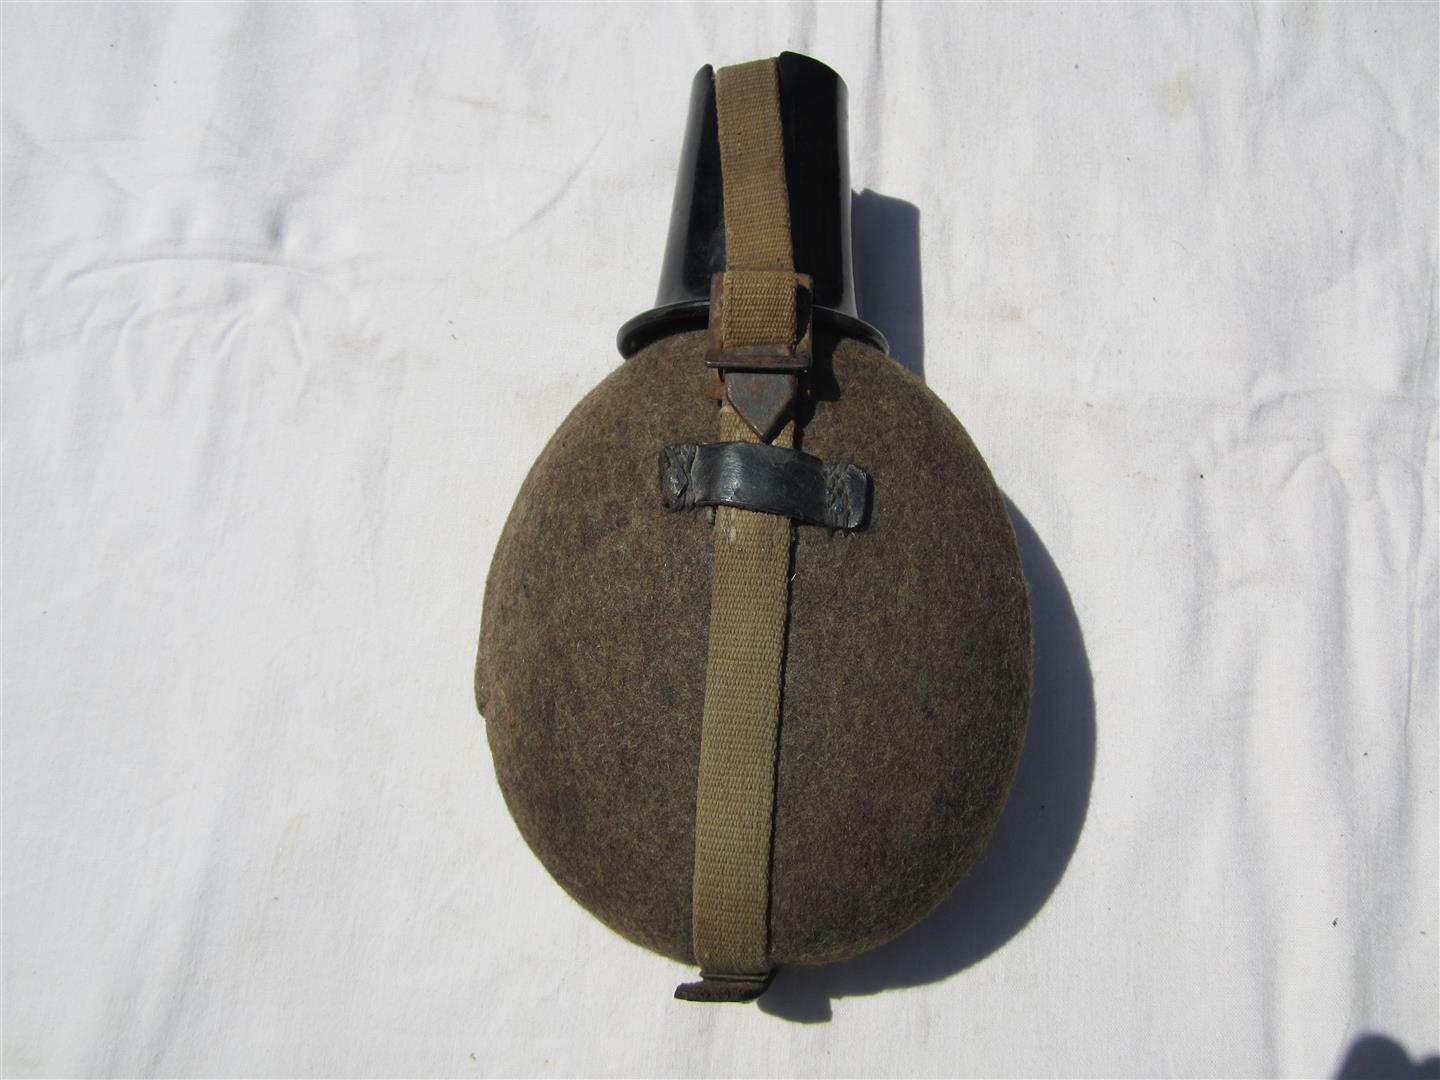 WW2 DAK Fieldbottle, 1941